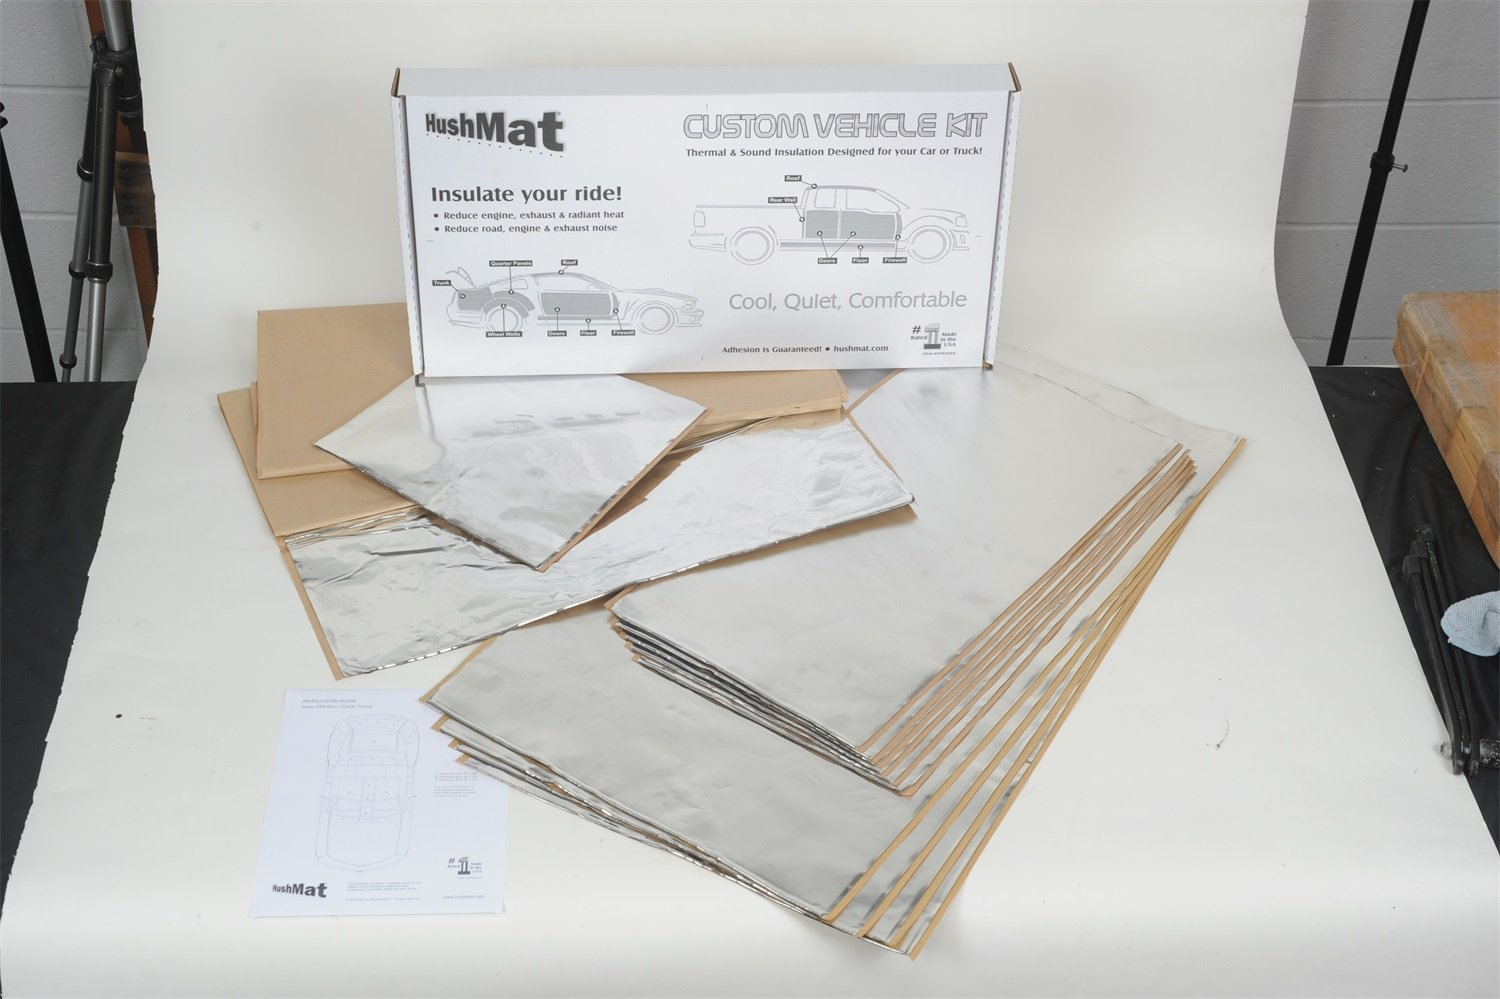 1959 Silver Challenger - Roof Hushmat 661595 Sound and Thermal Insulation Kit